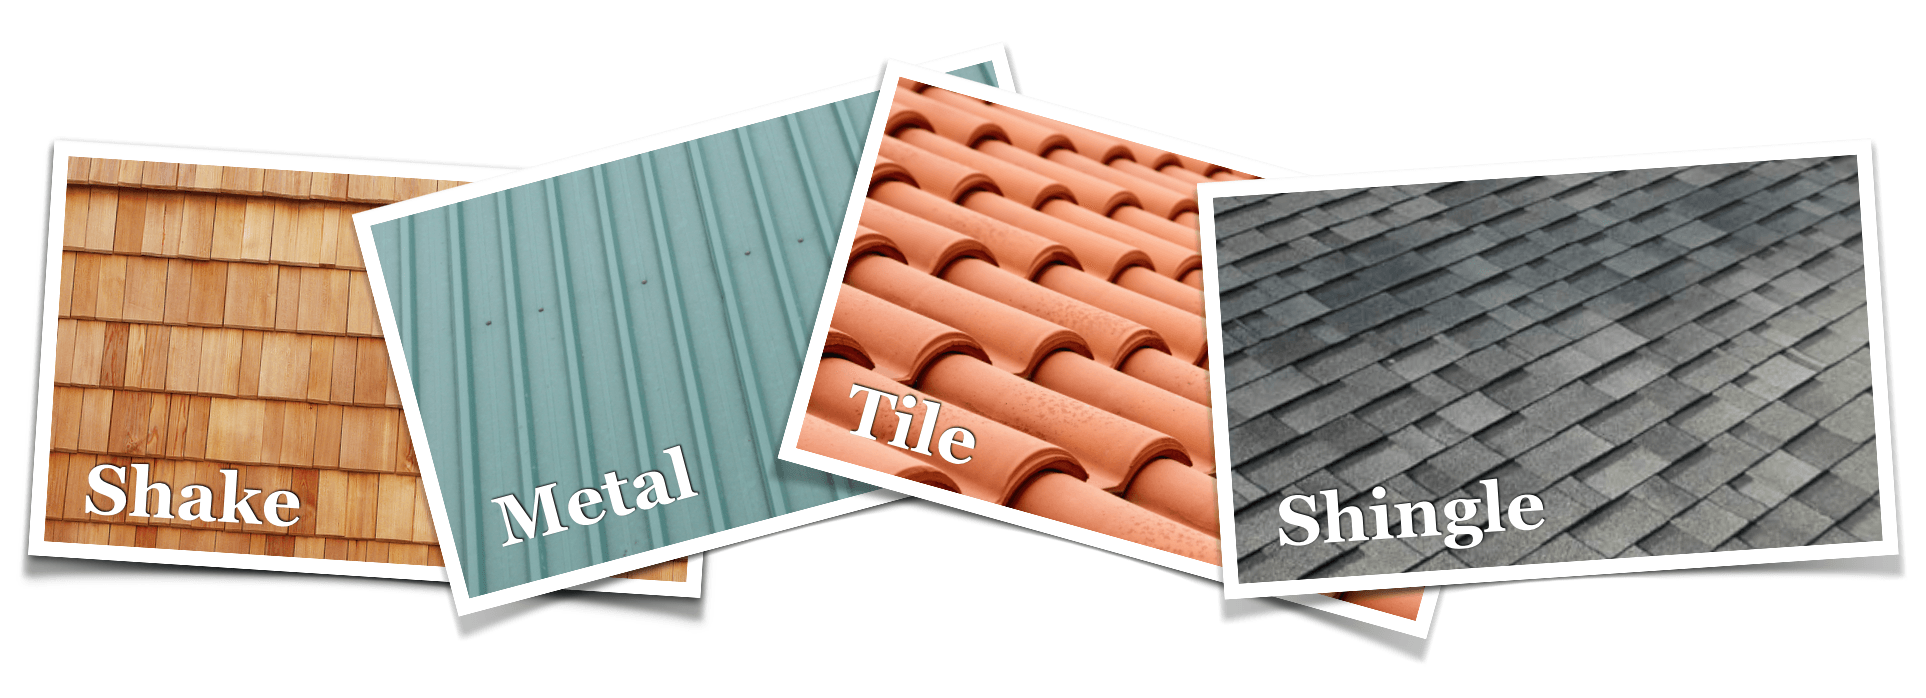 4 Types of Roofs